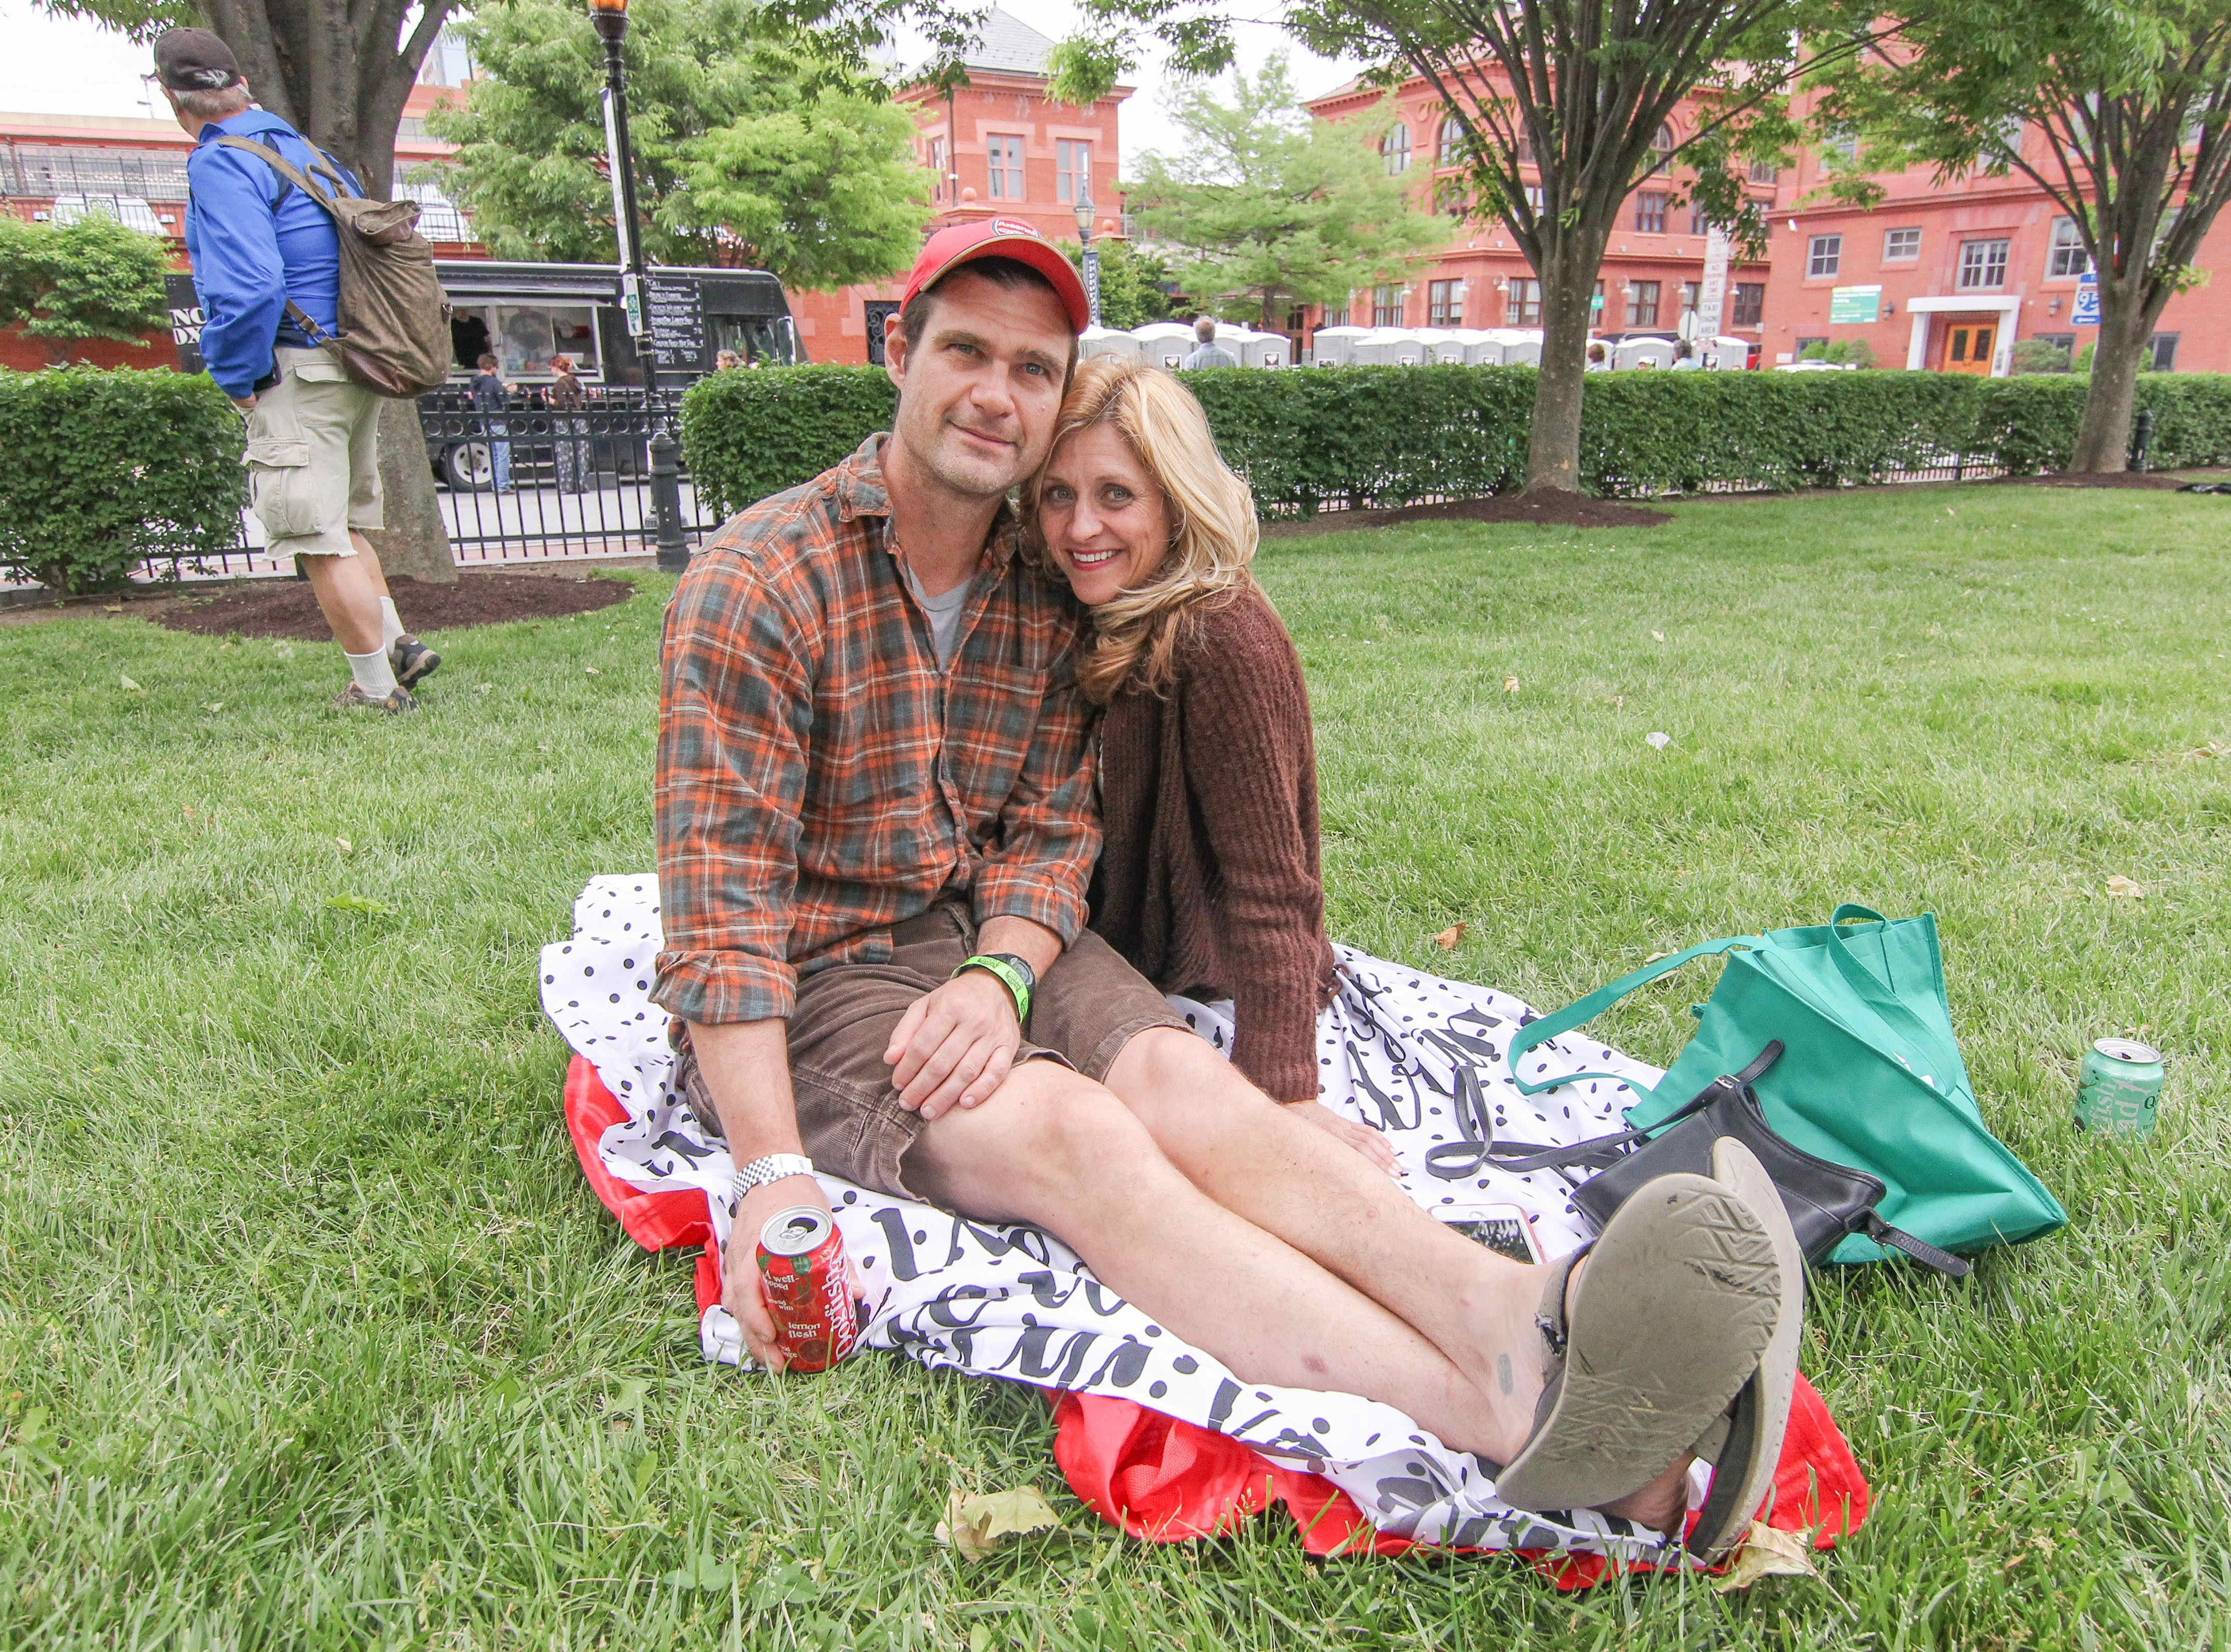 Andy Flanigan (left) and Erin Sheridan of Philadelphia enjoy the day at the Bromberg's Big Noise in 2017.